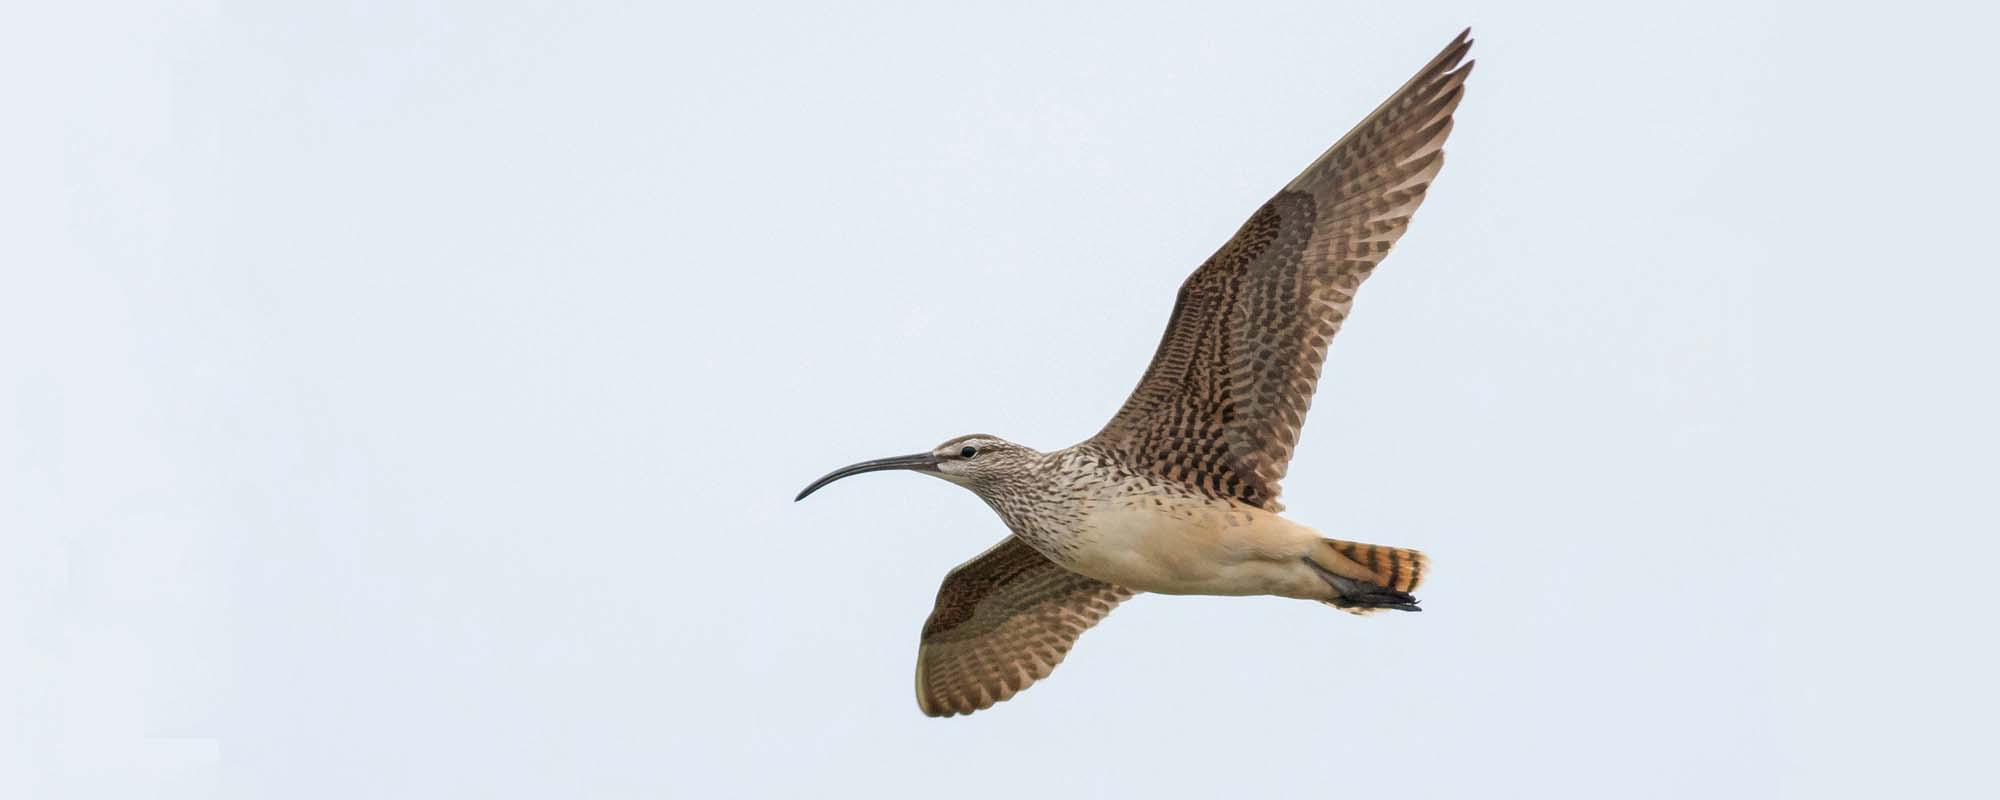 Bristle-thighed Curlew Field Guides Birding Tours ALASKA USA